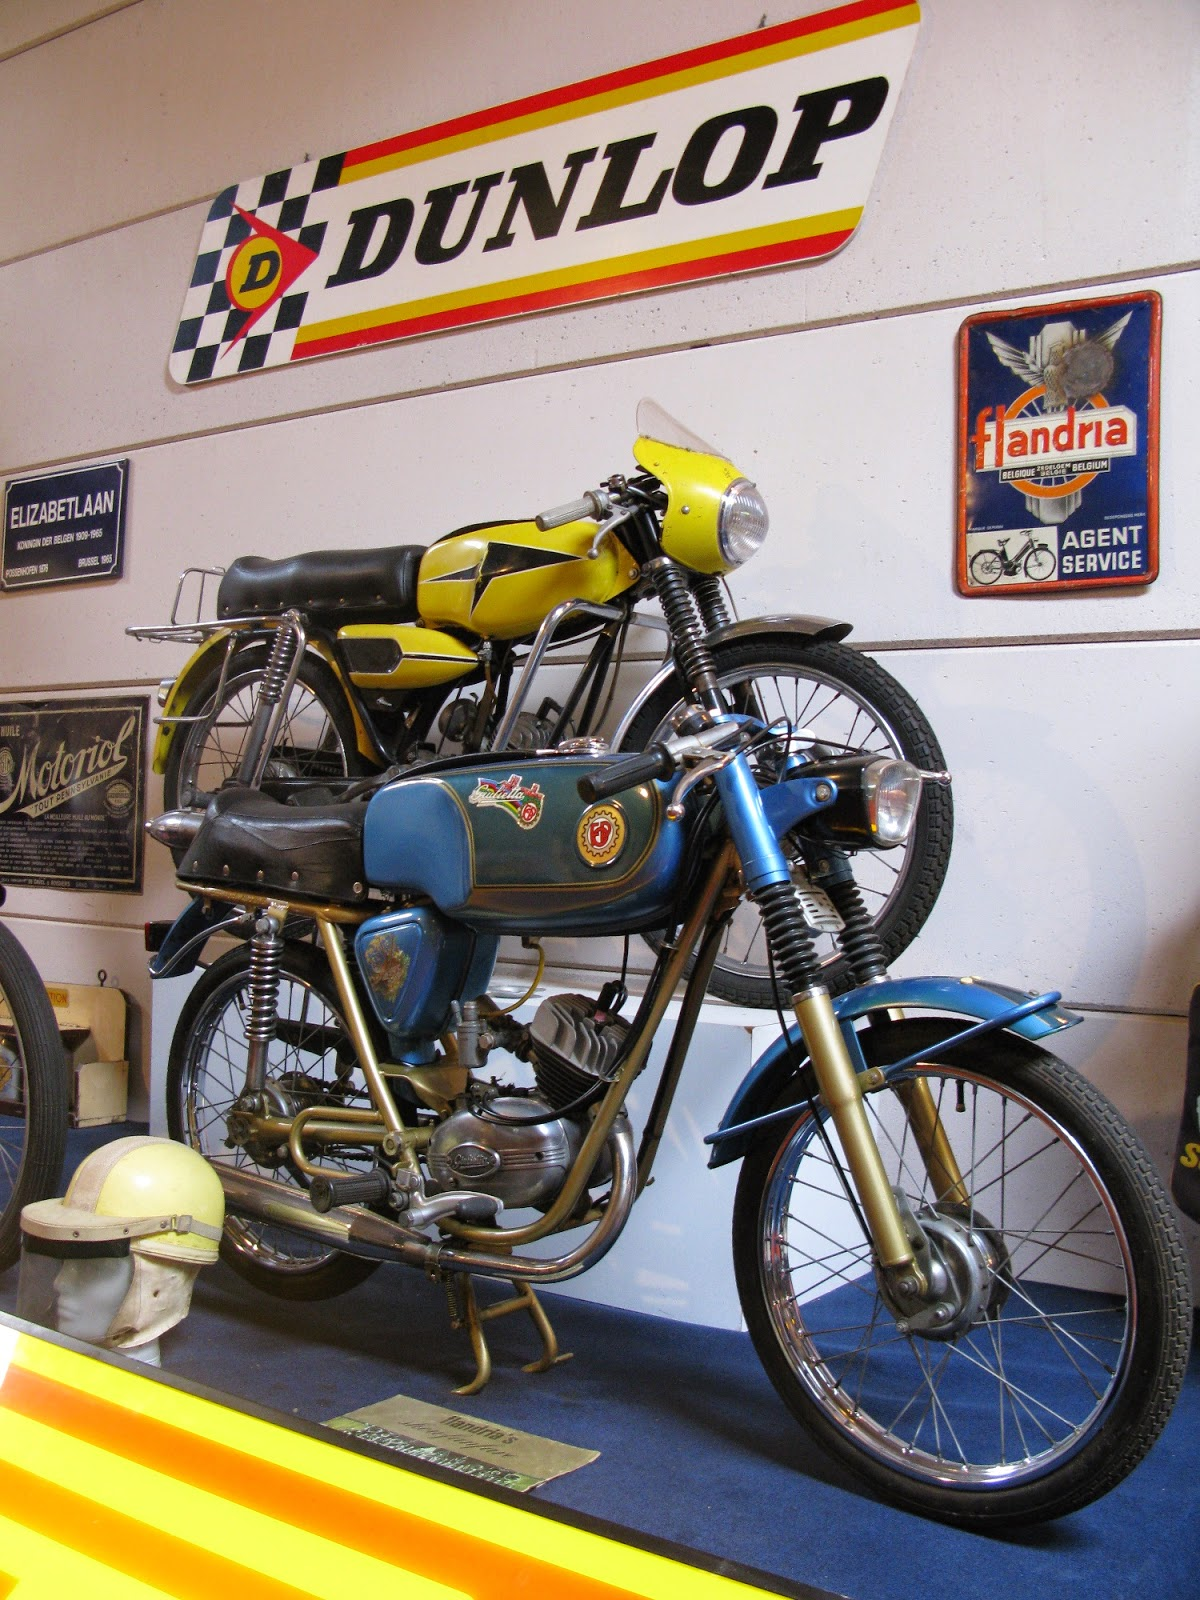 Guiletta and Flandria sports mopeds